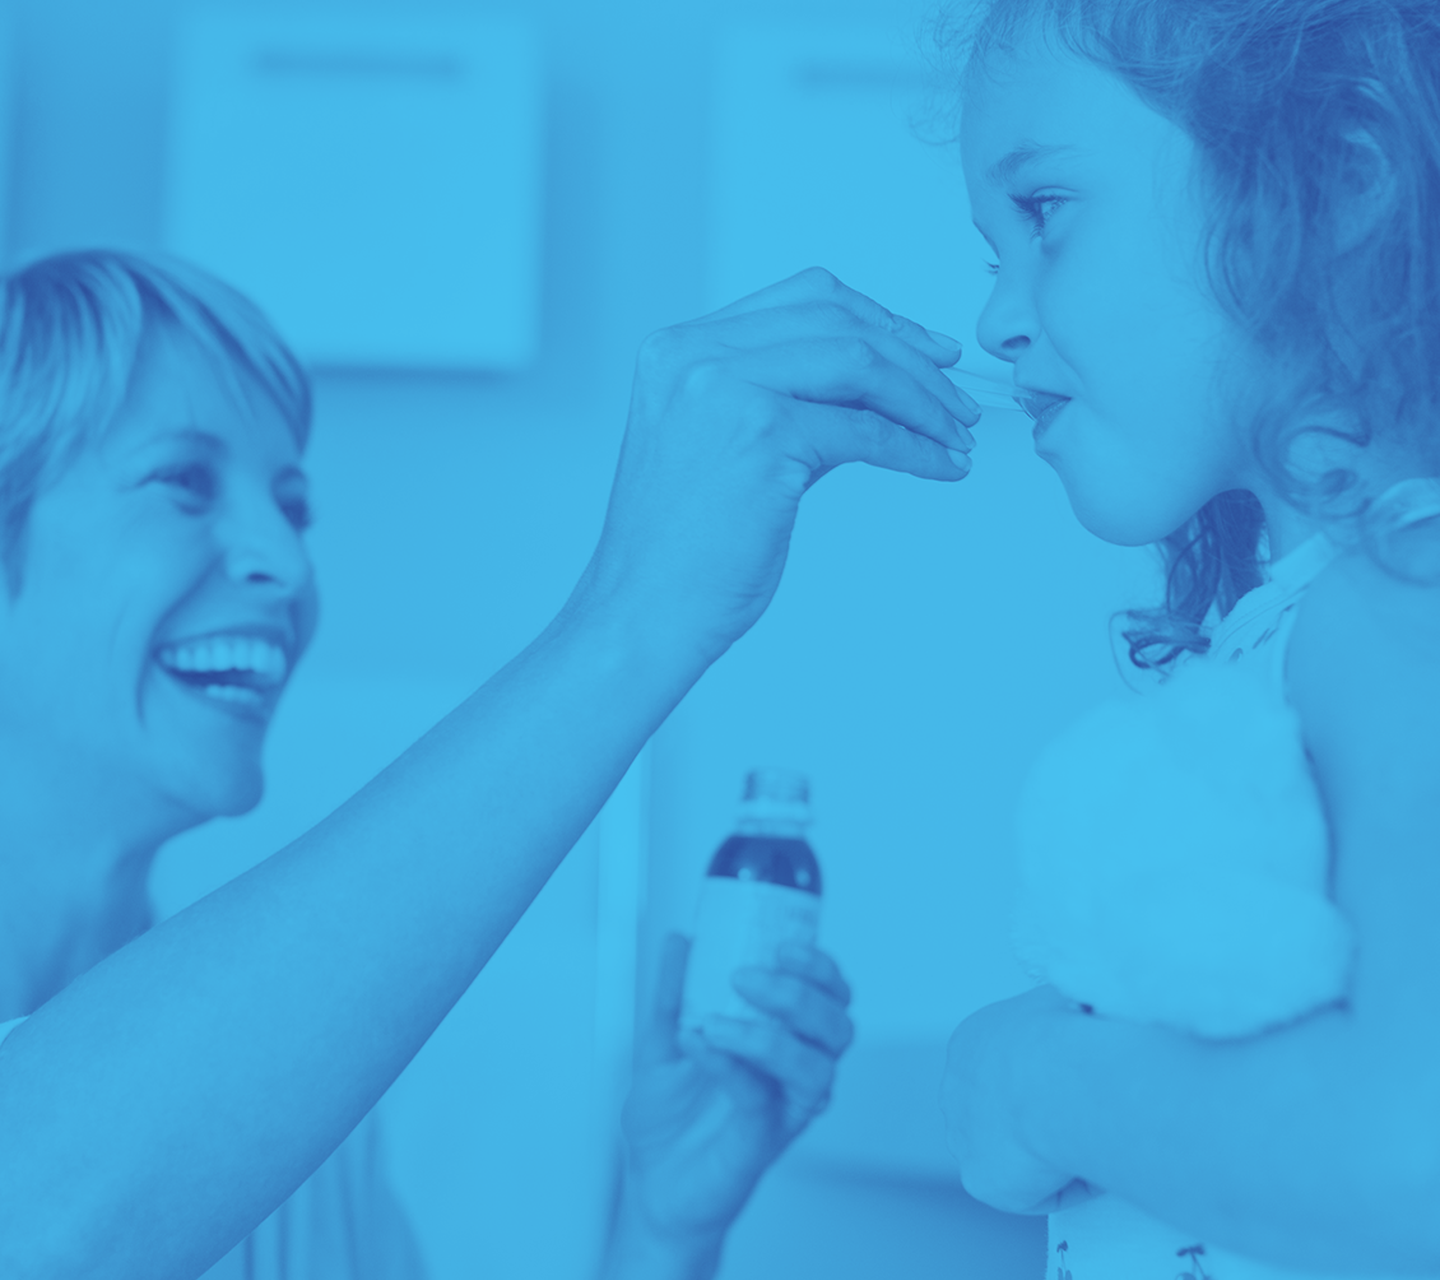 Older woman giving child liquid oral medication with a spoon